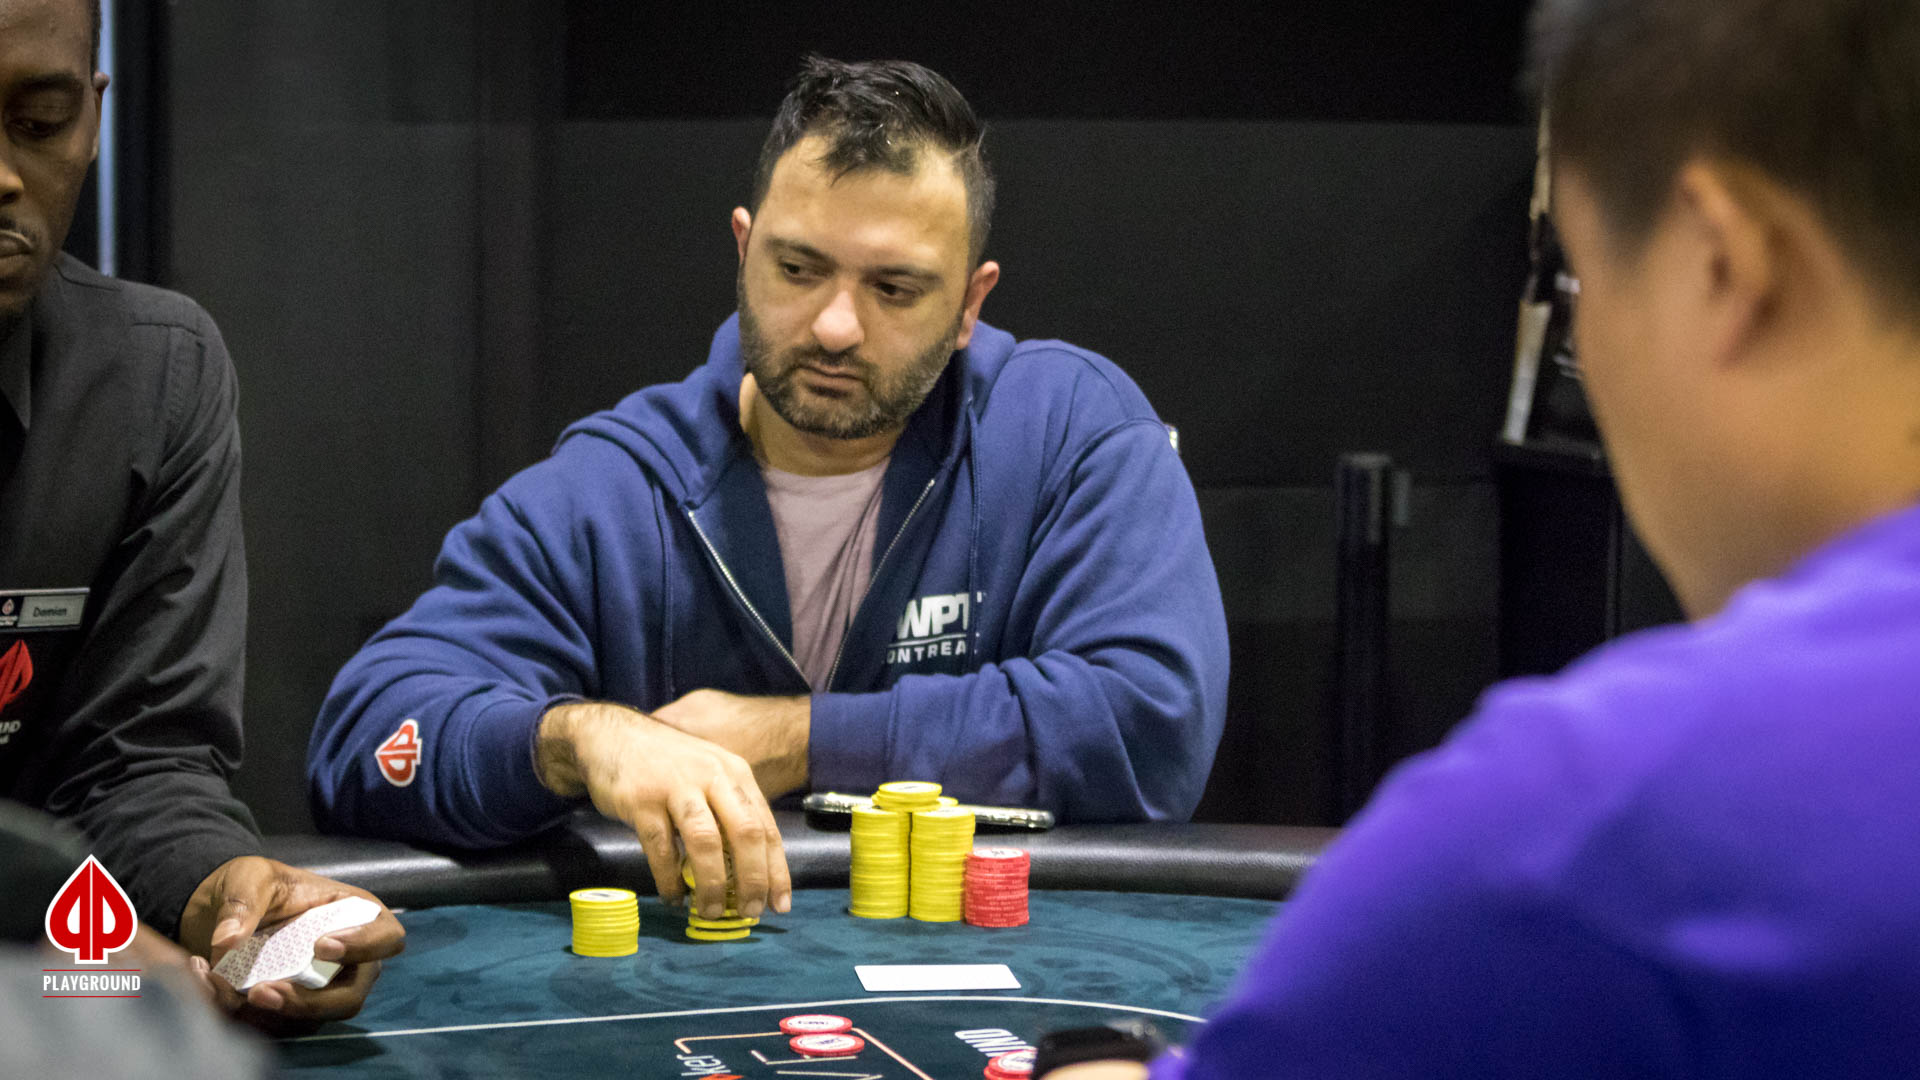 Semaan counterfeited, finishes in fourth